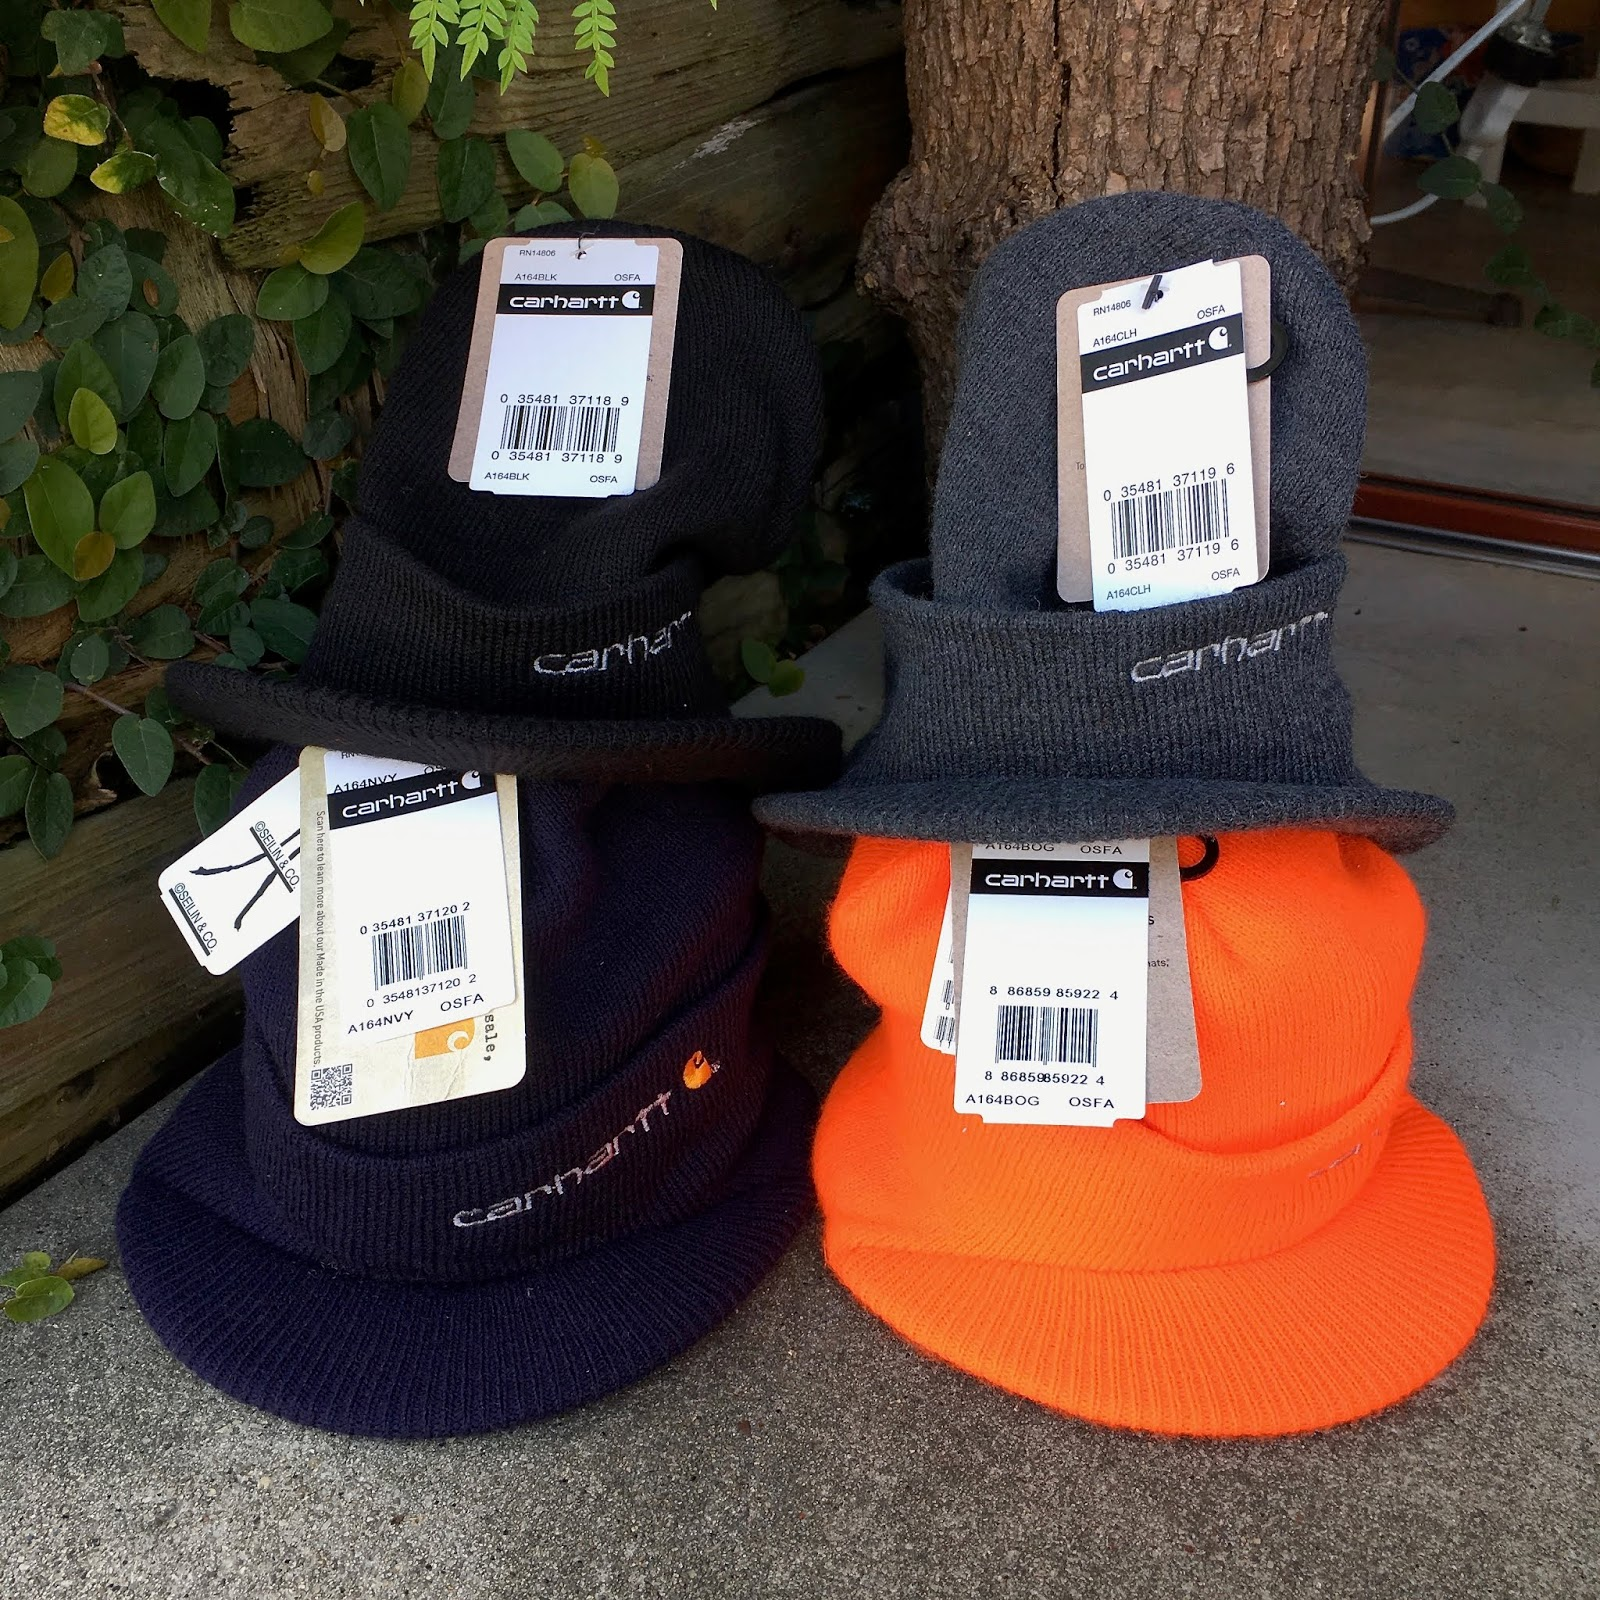 88f4beac CARHARTT : A164 KNIT HAT WITH VISOR   welcoblog